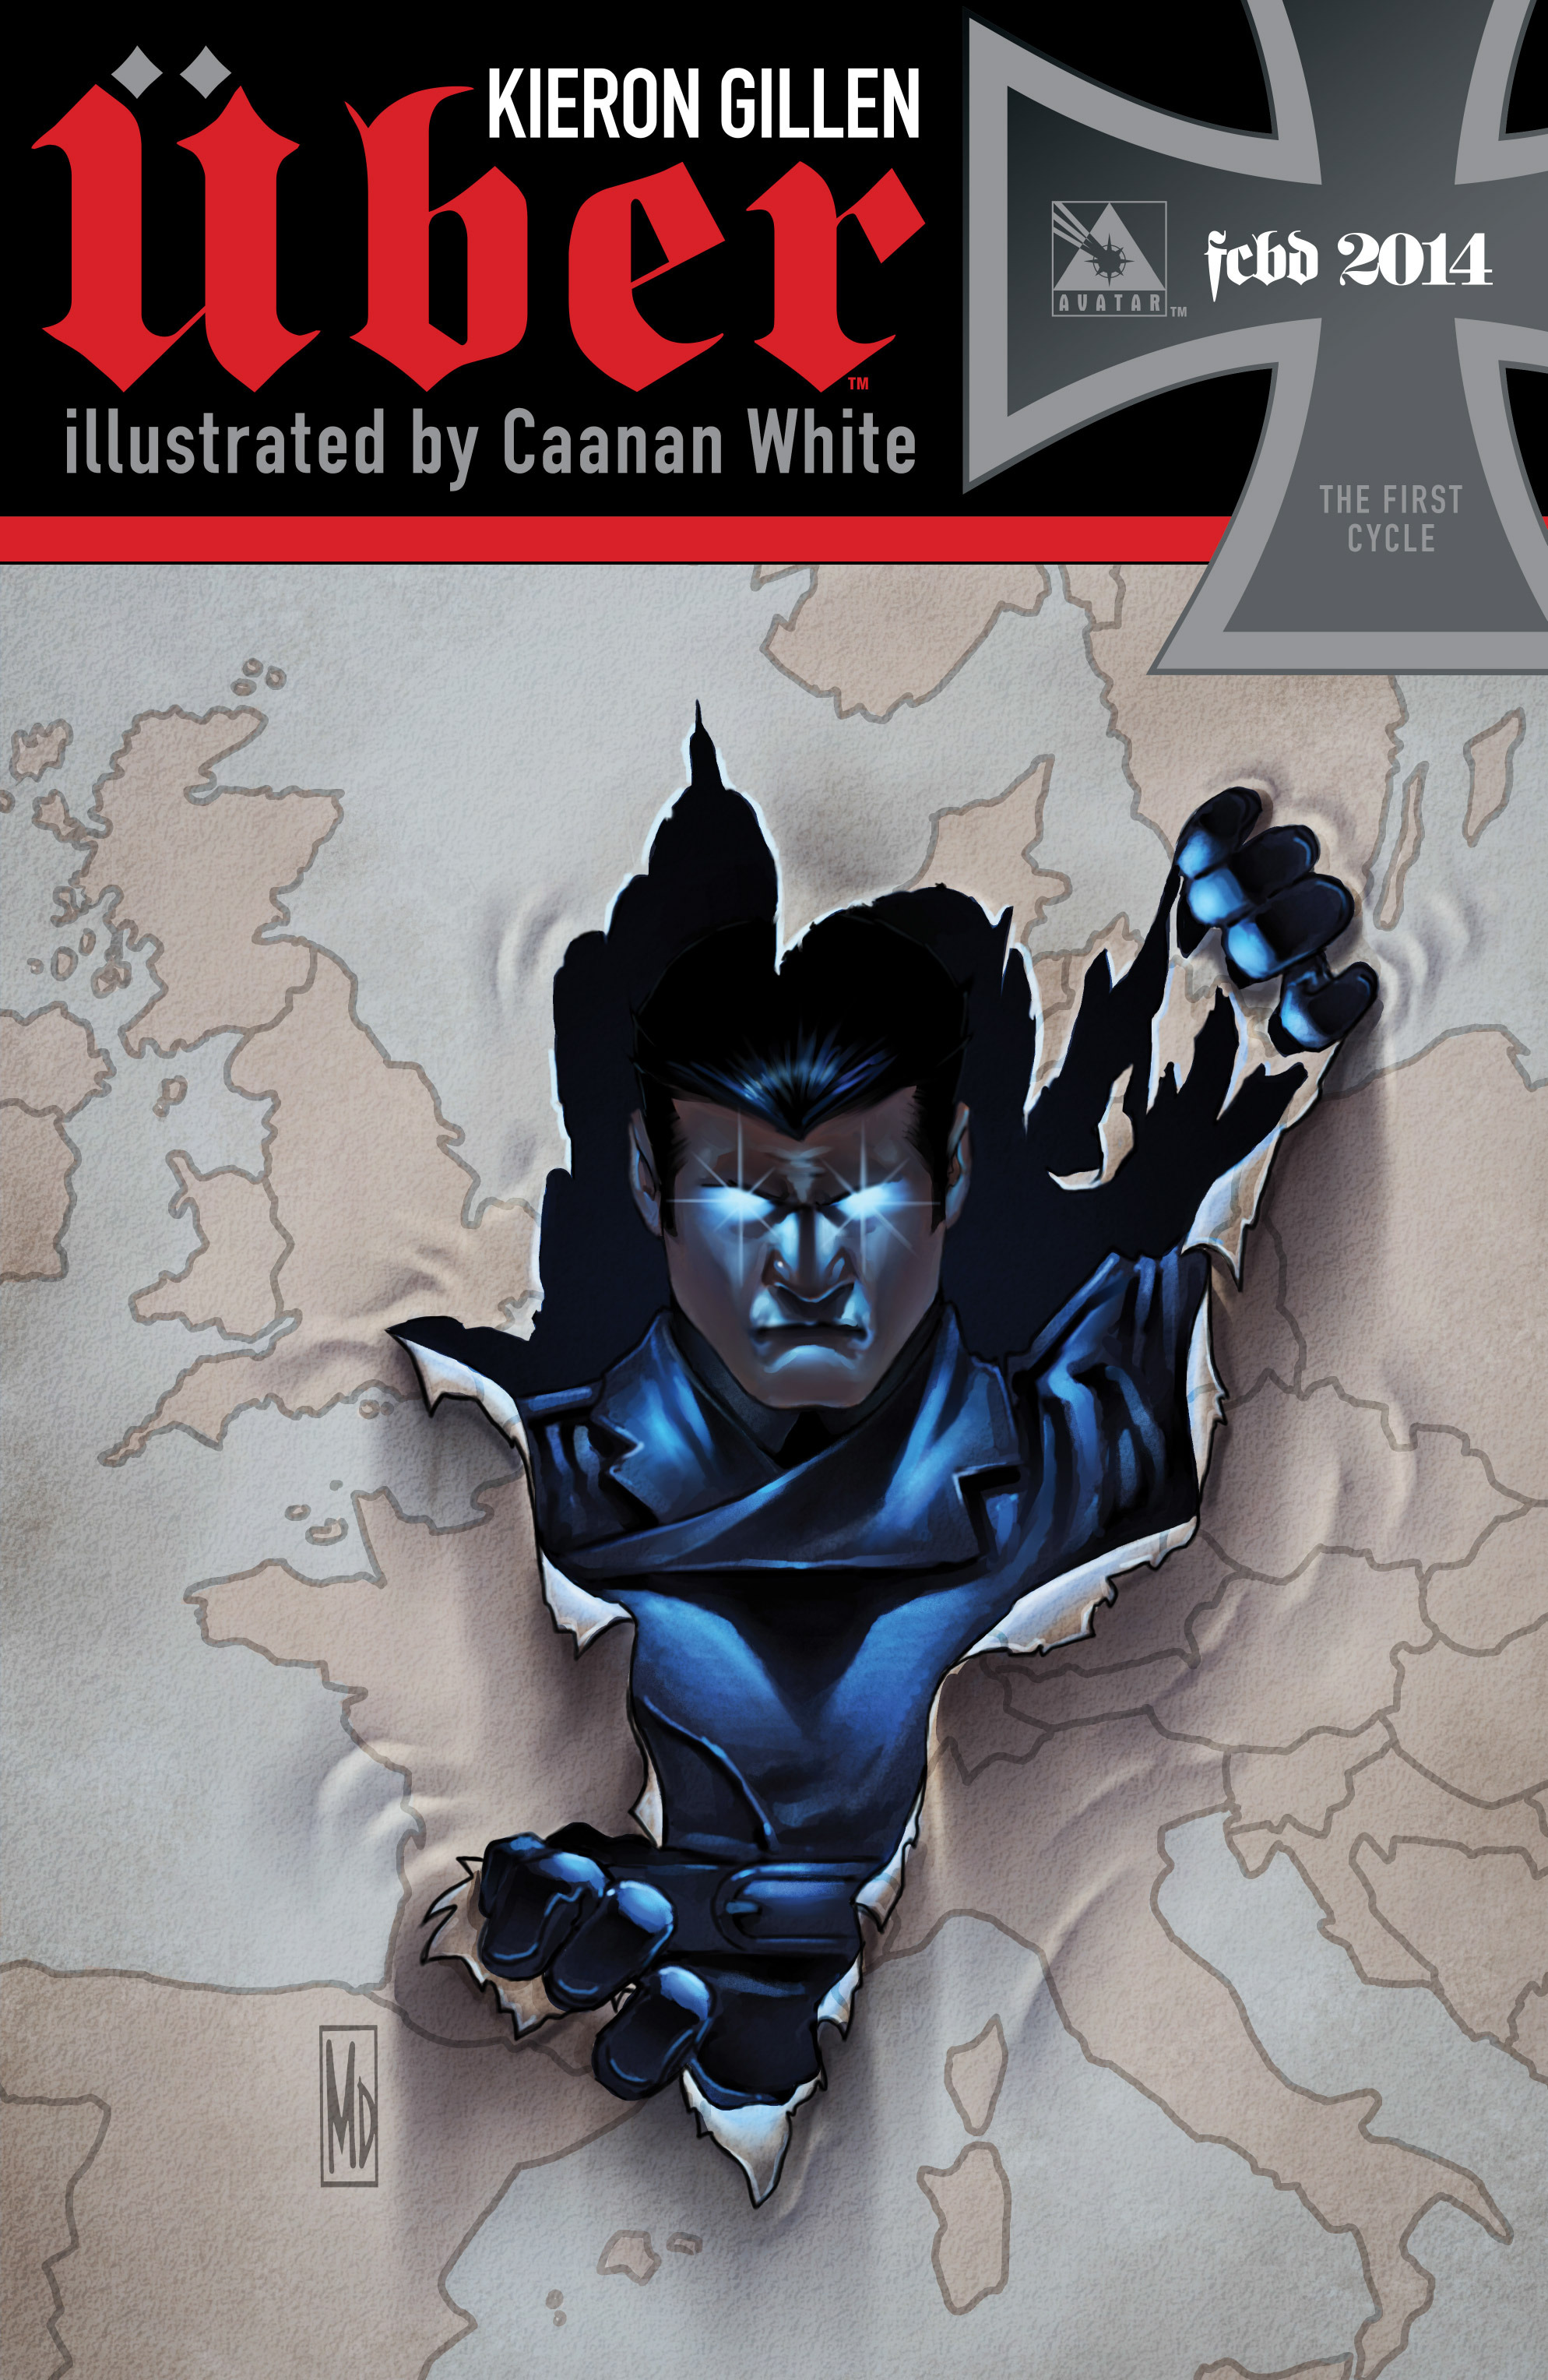 Read online Uber comic -  Issue # _FCBD - The First Cycle - 1